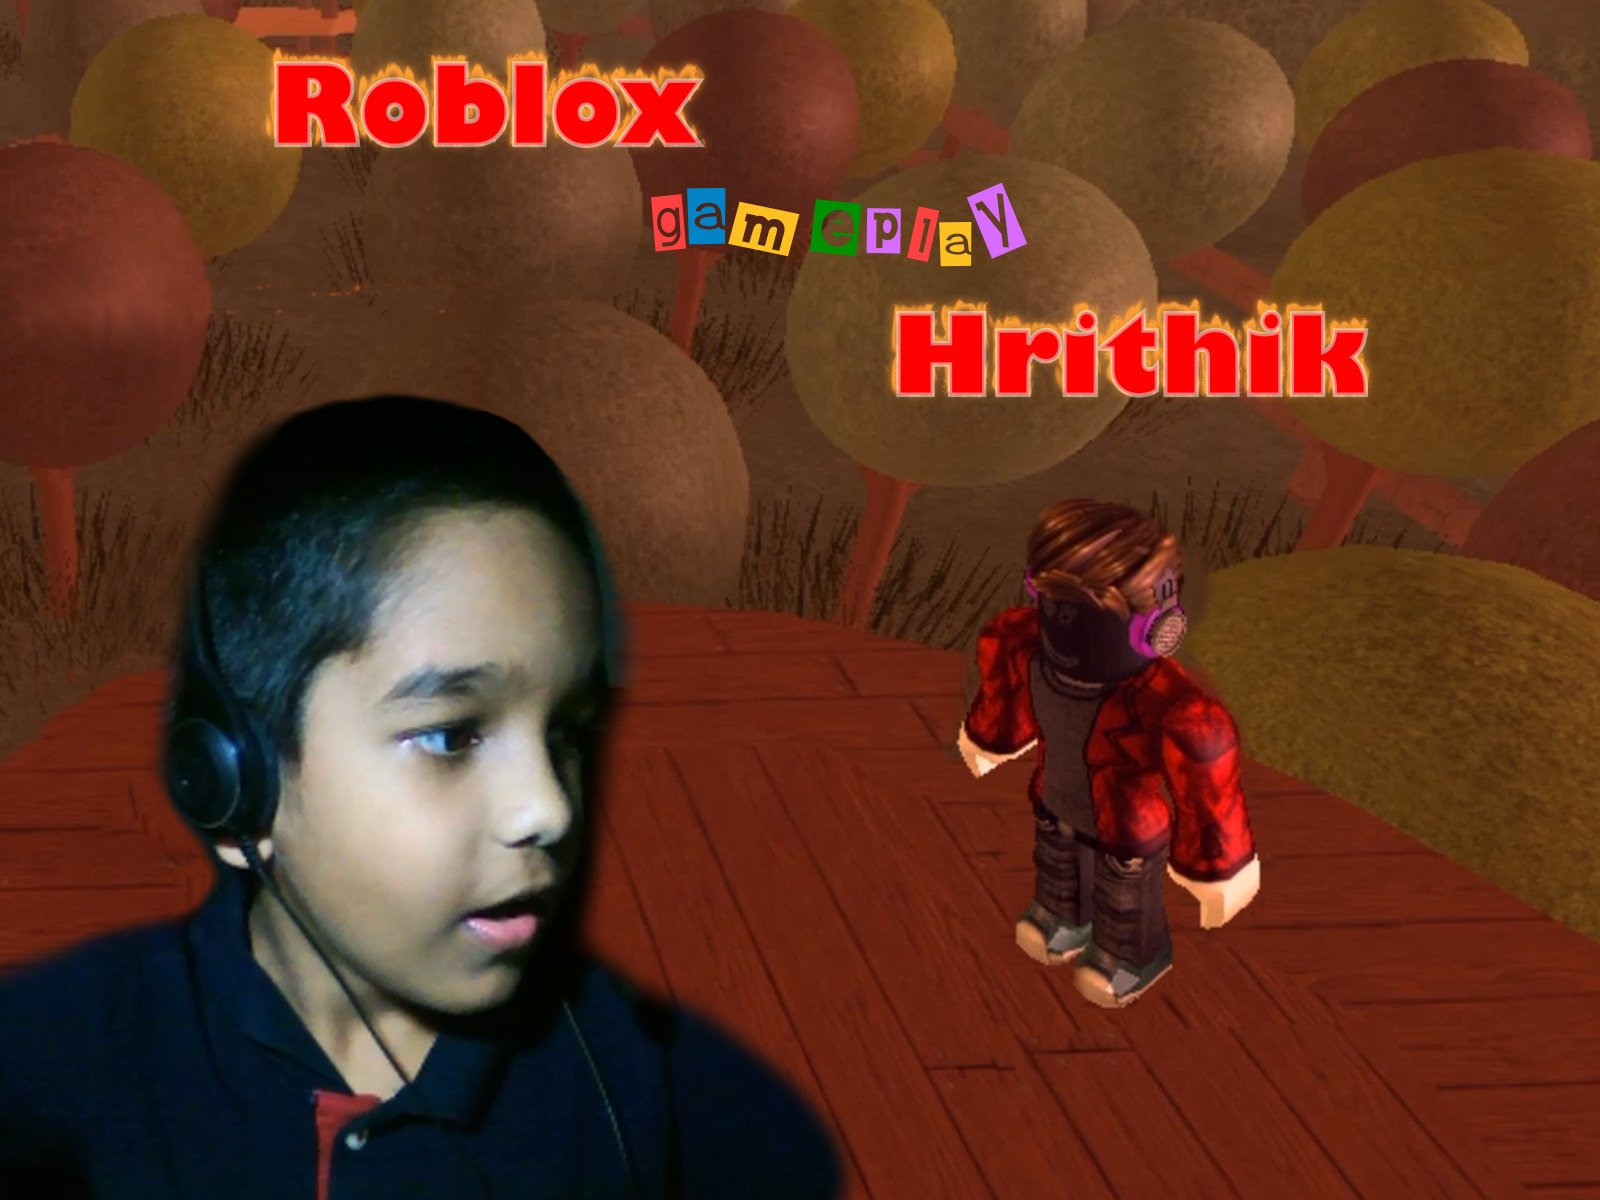 Amazon com: Watch Clip: Roblox Gameplay Hrithik | Prime Video